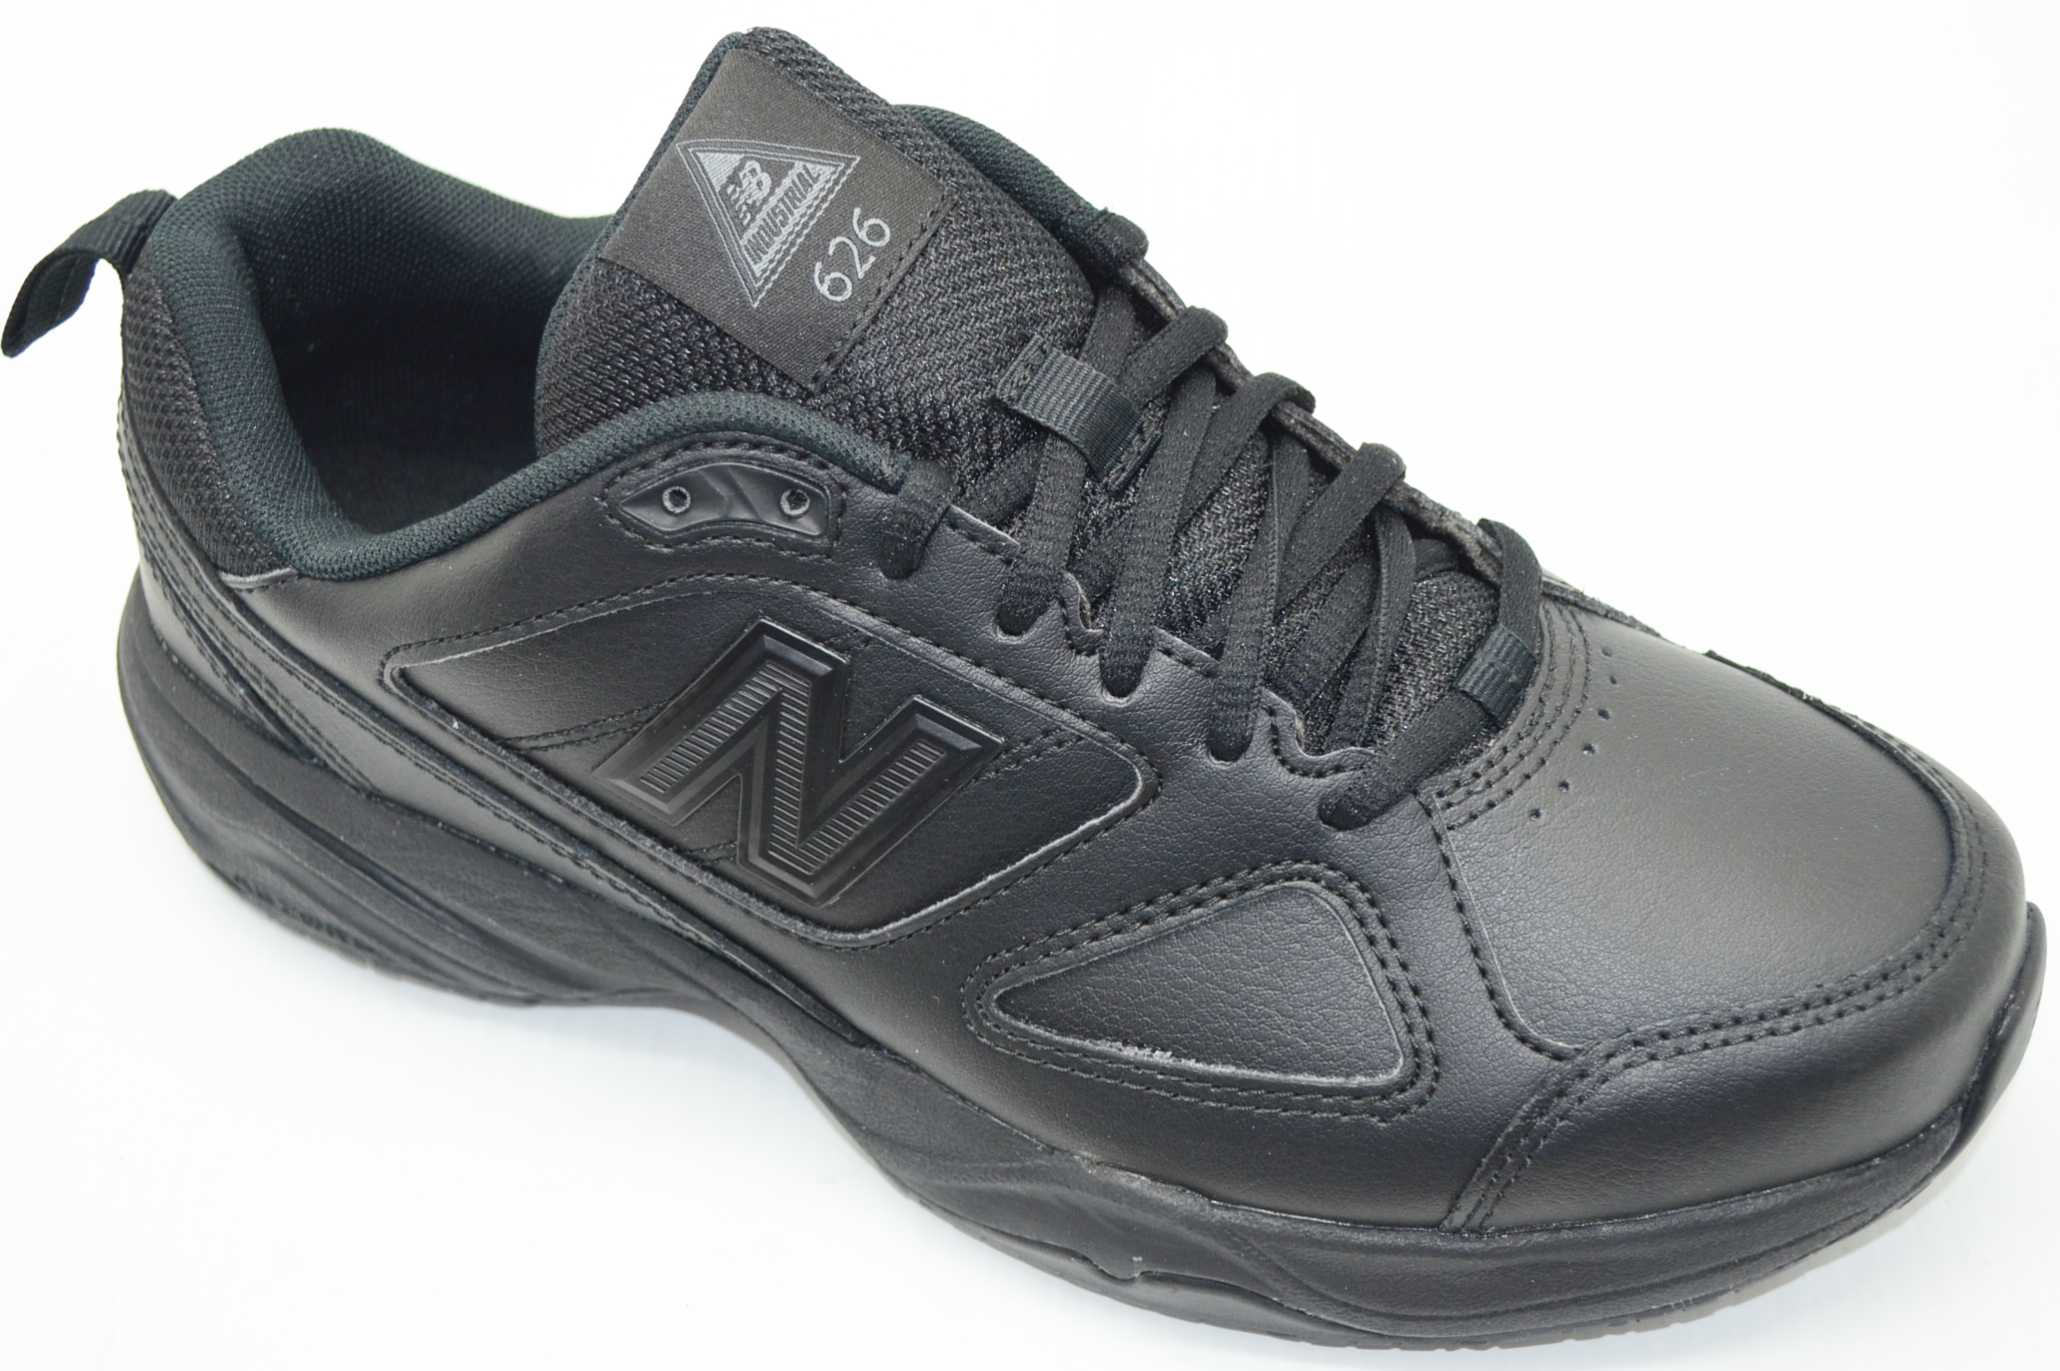 43e2d113 New Balance - MID626 Industrial Men's